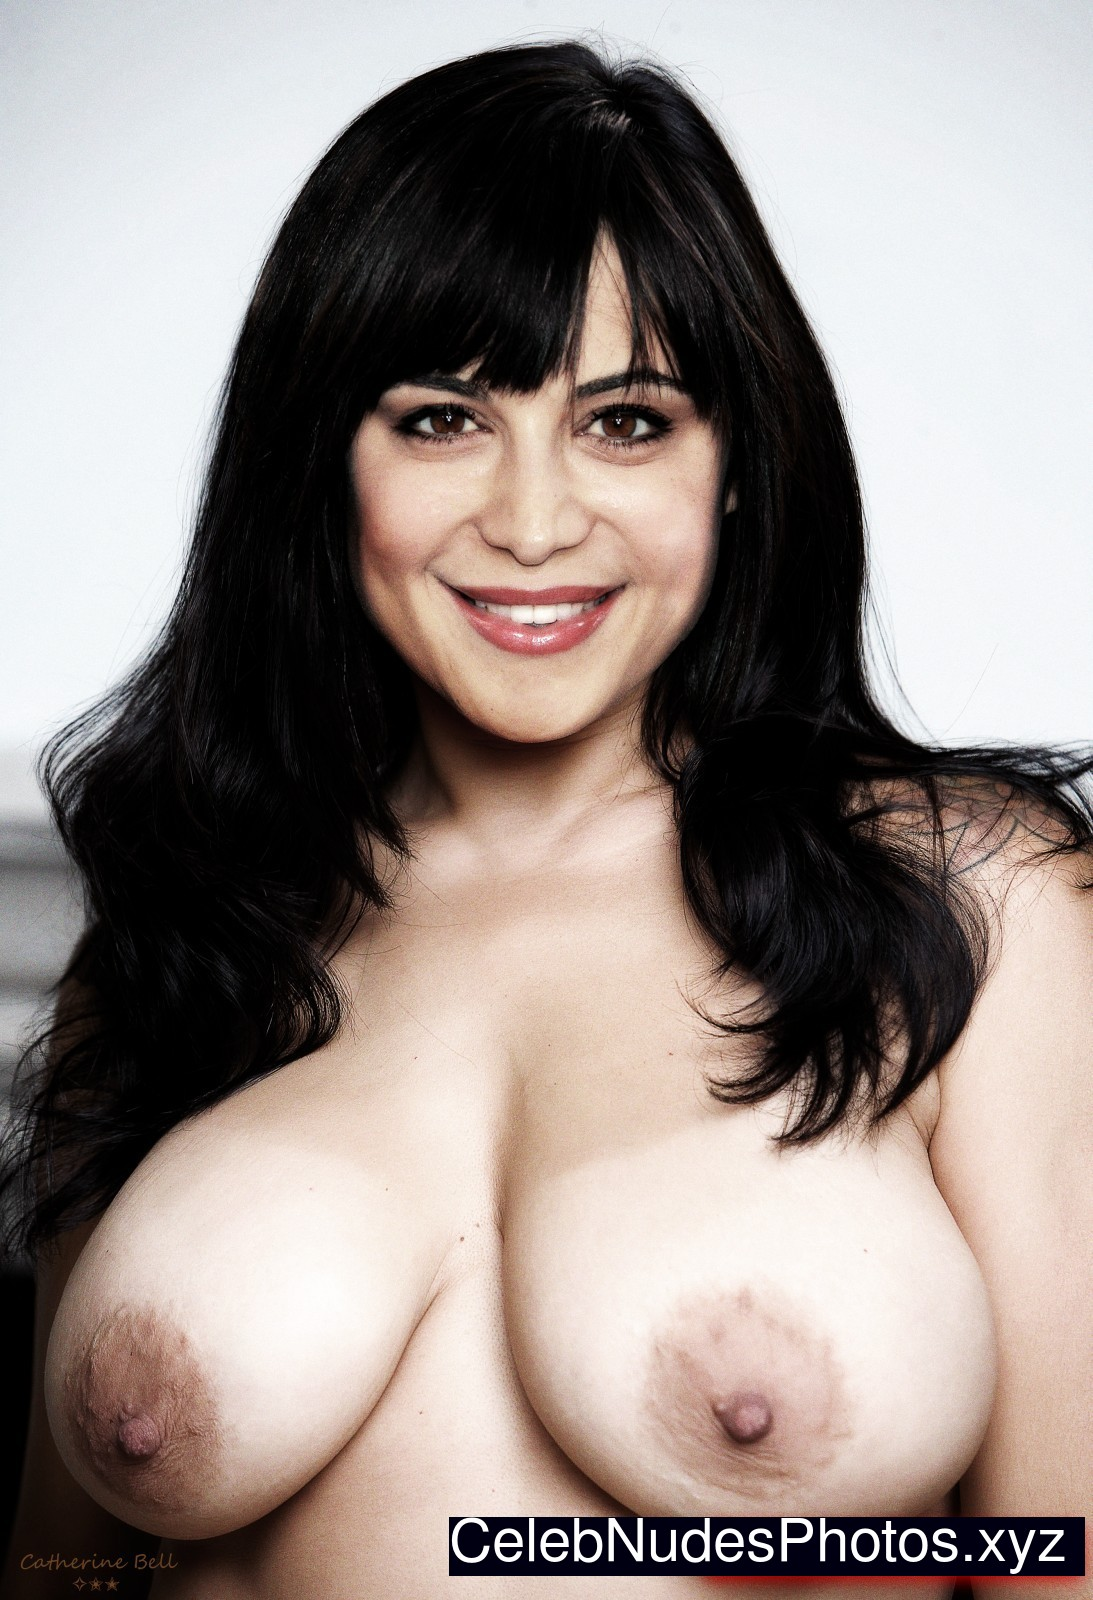 Catherine bell nude